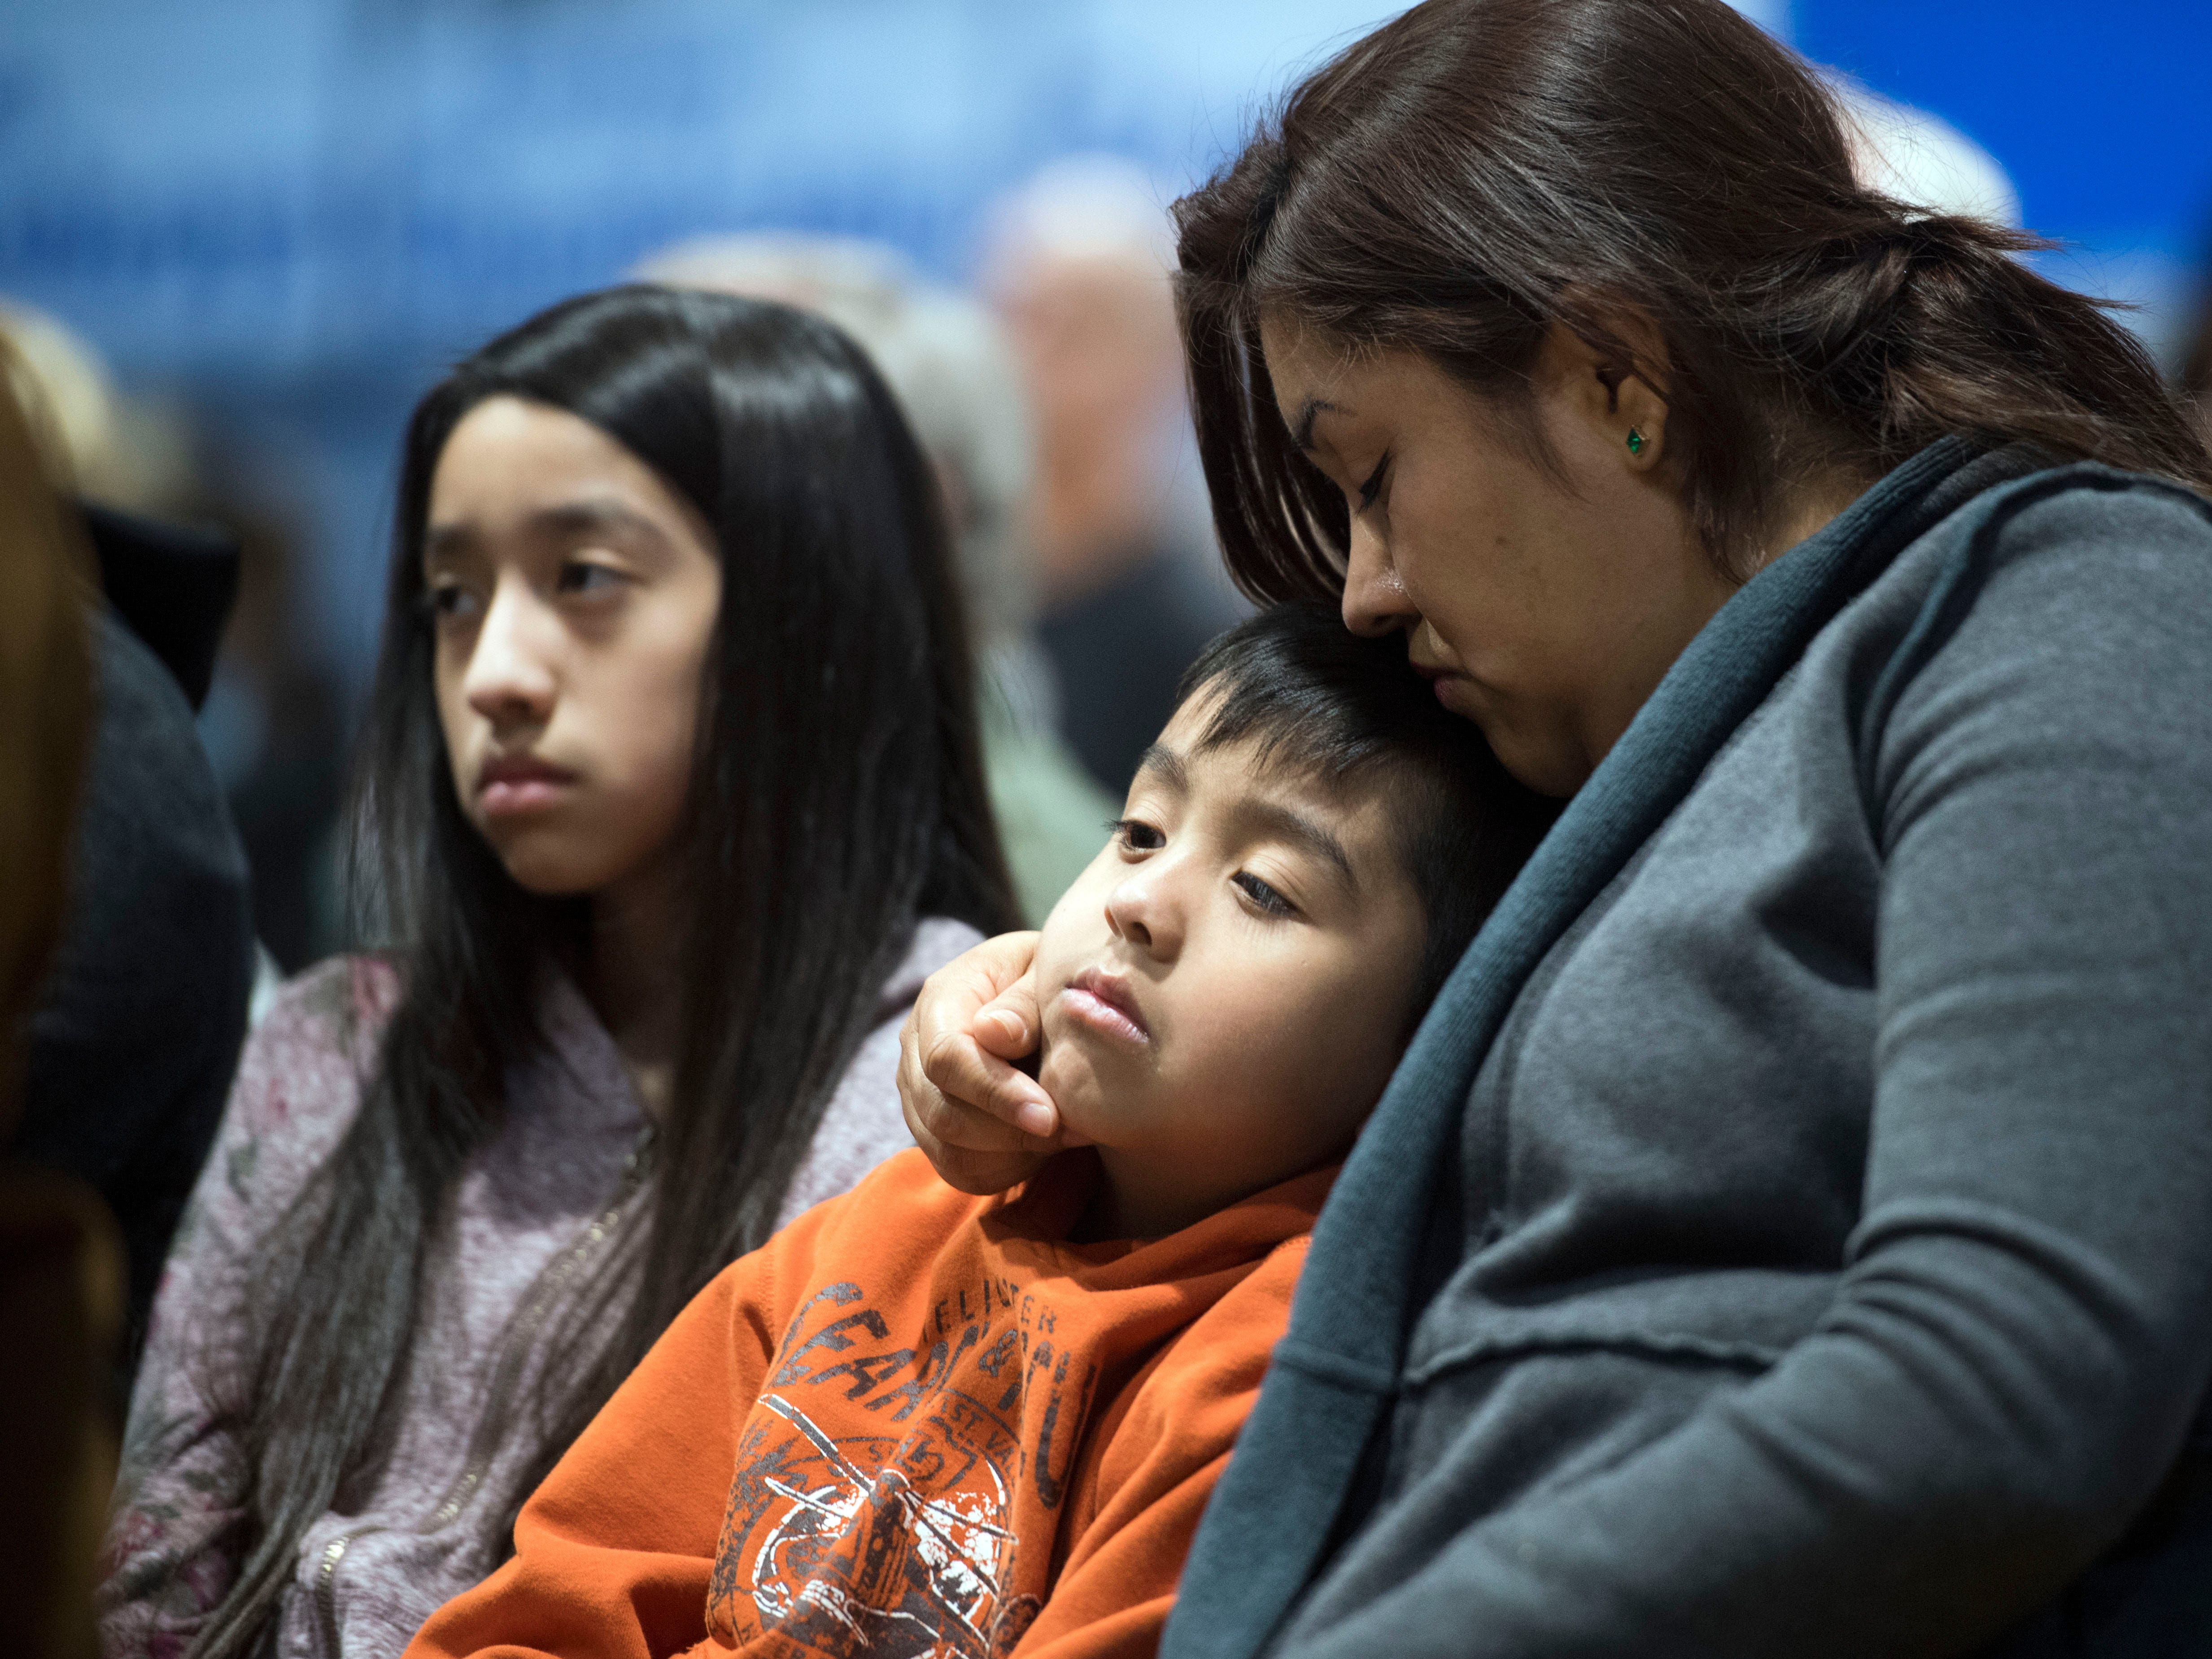 A family attends a prayer vigil hosted by Tennessee Immigrant and Refugee Rights Coalition and the Highlander Center on Monday, April 9, 2018 at Hillcrest Elementary School in Morristown, TN in response the detainment of immigrant workers after ICE raided Southeastern Provisions, a cattle slaughterhouse in Grainger County.